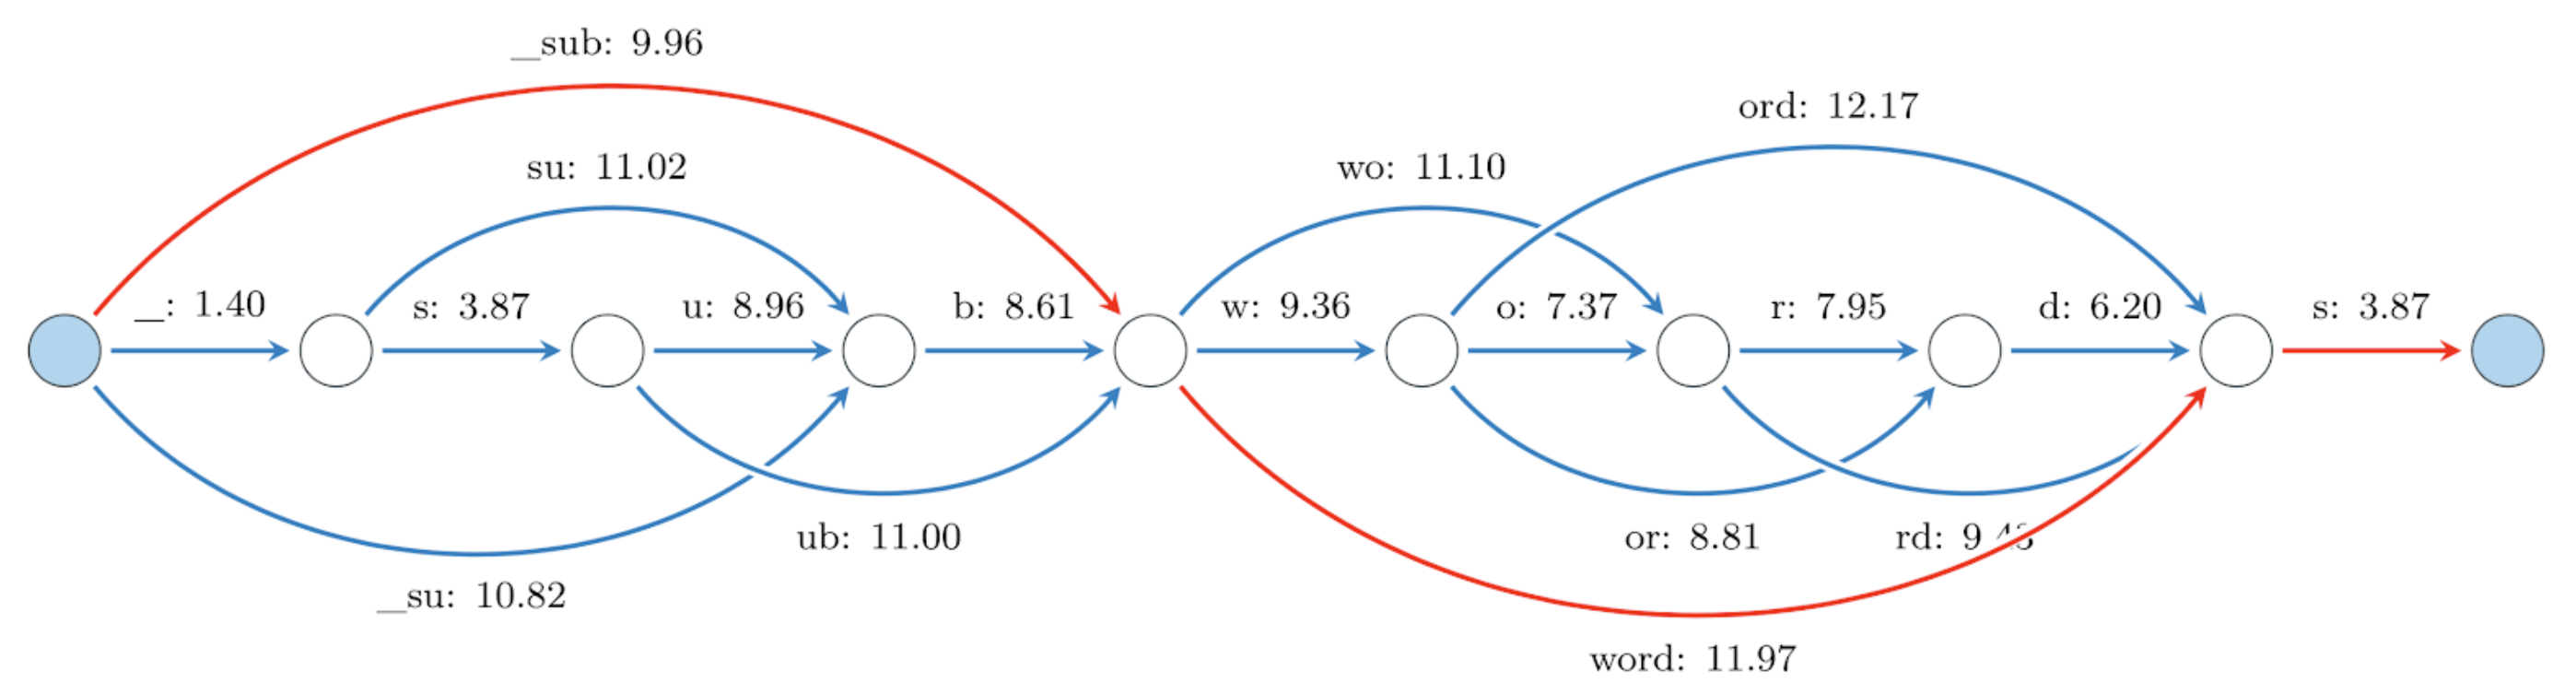 A graph of possible subword tokenizations for the token '_subwords'. The number next to each token is its negative log  likelihood. The most probable tokenization corresponds to the shortest weighted path connecting the blue nodes  (indicated in red).